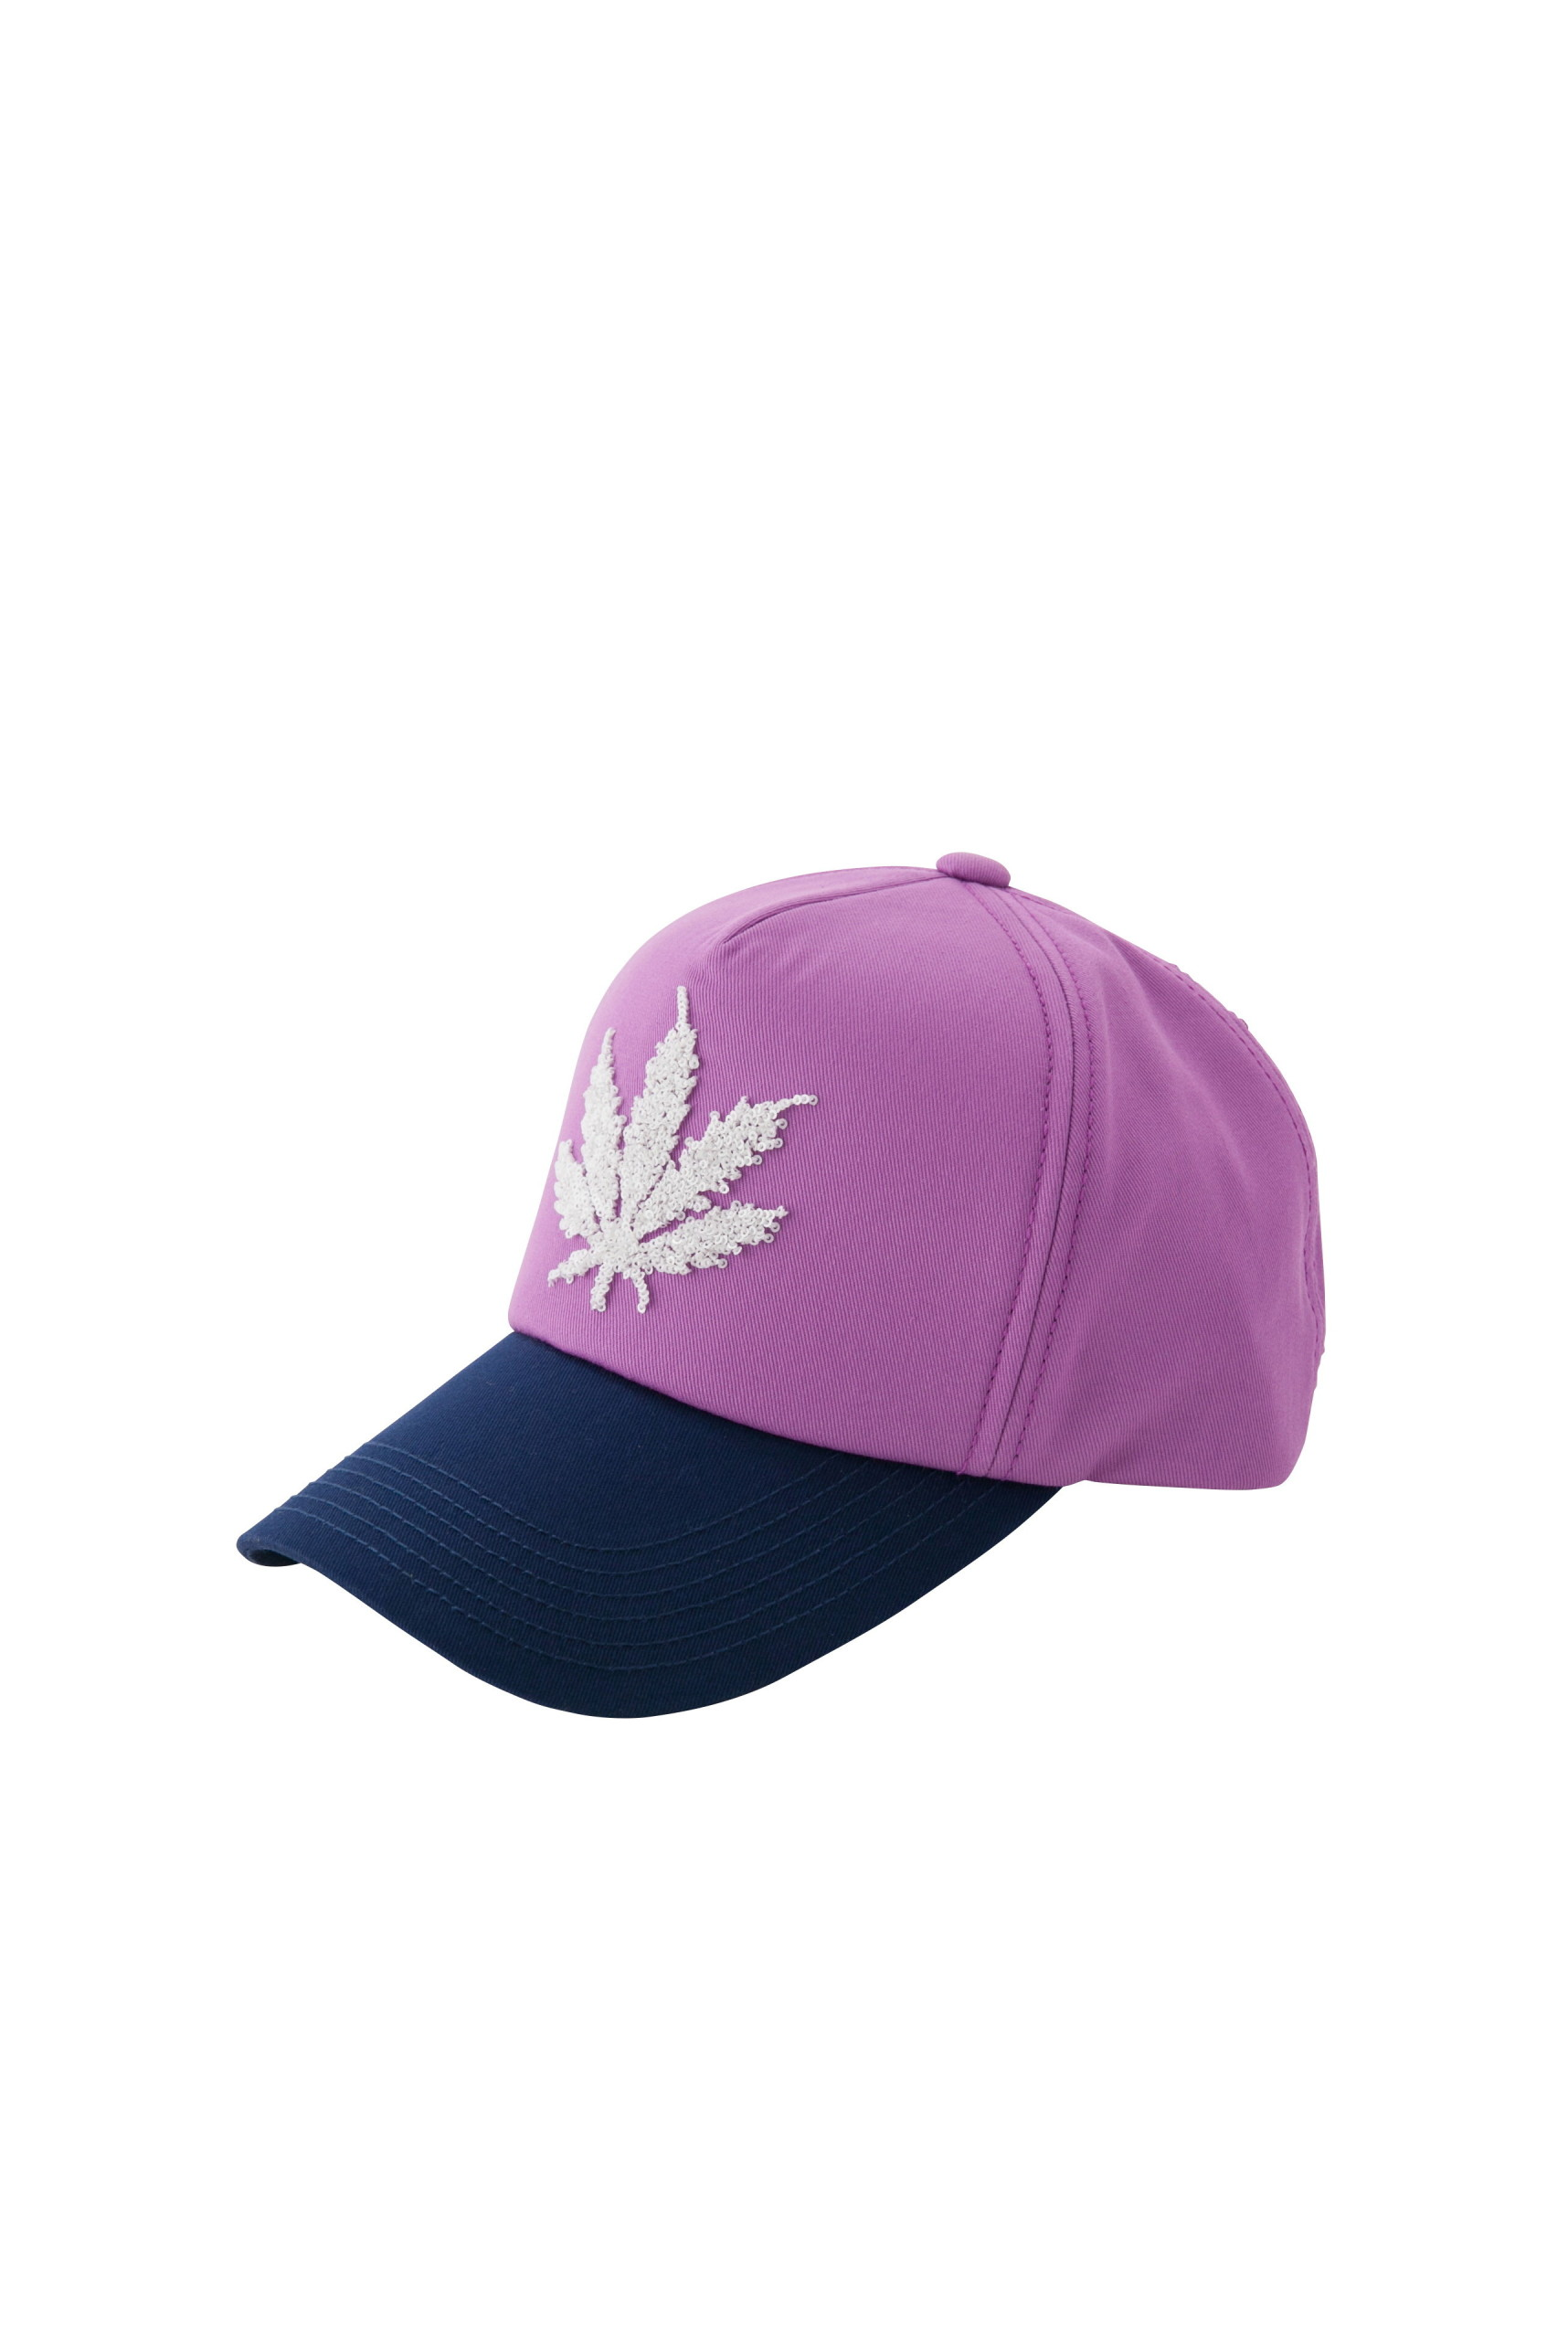 CAP WITH 3D SEQUIN LEAF EMBROIDERY(PURPLE-UNI)